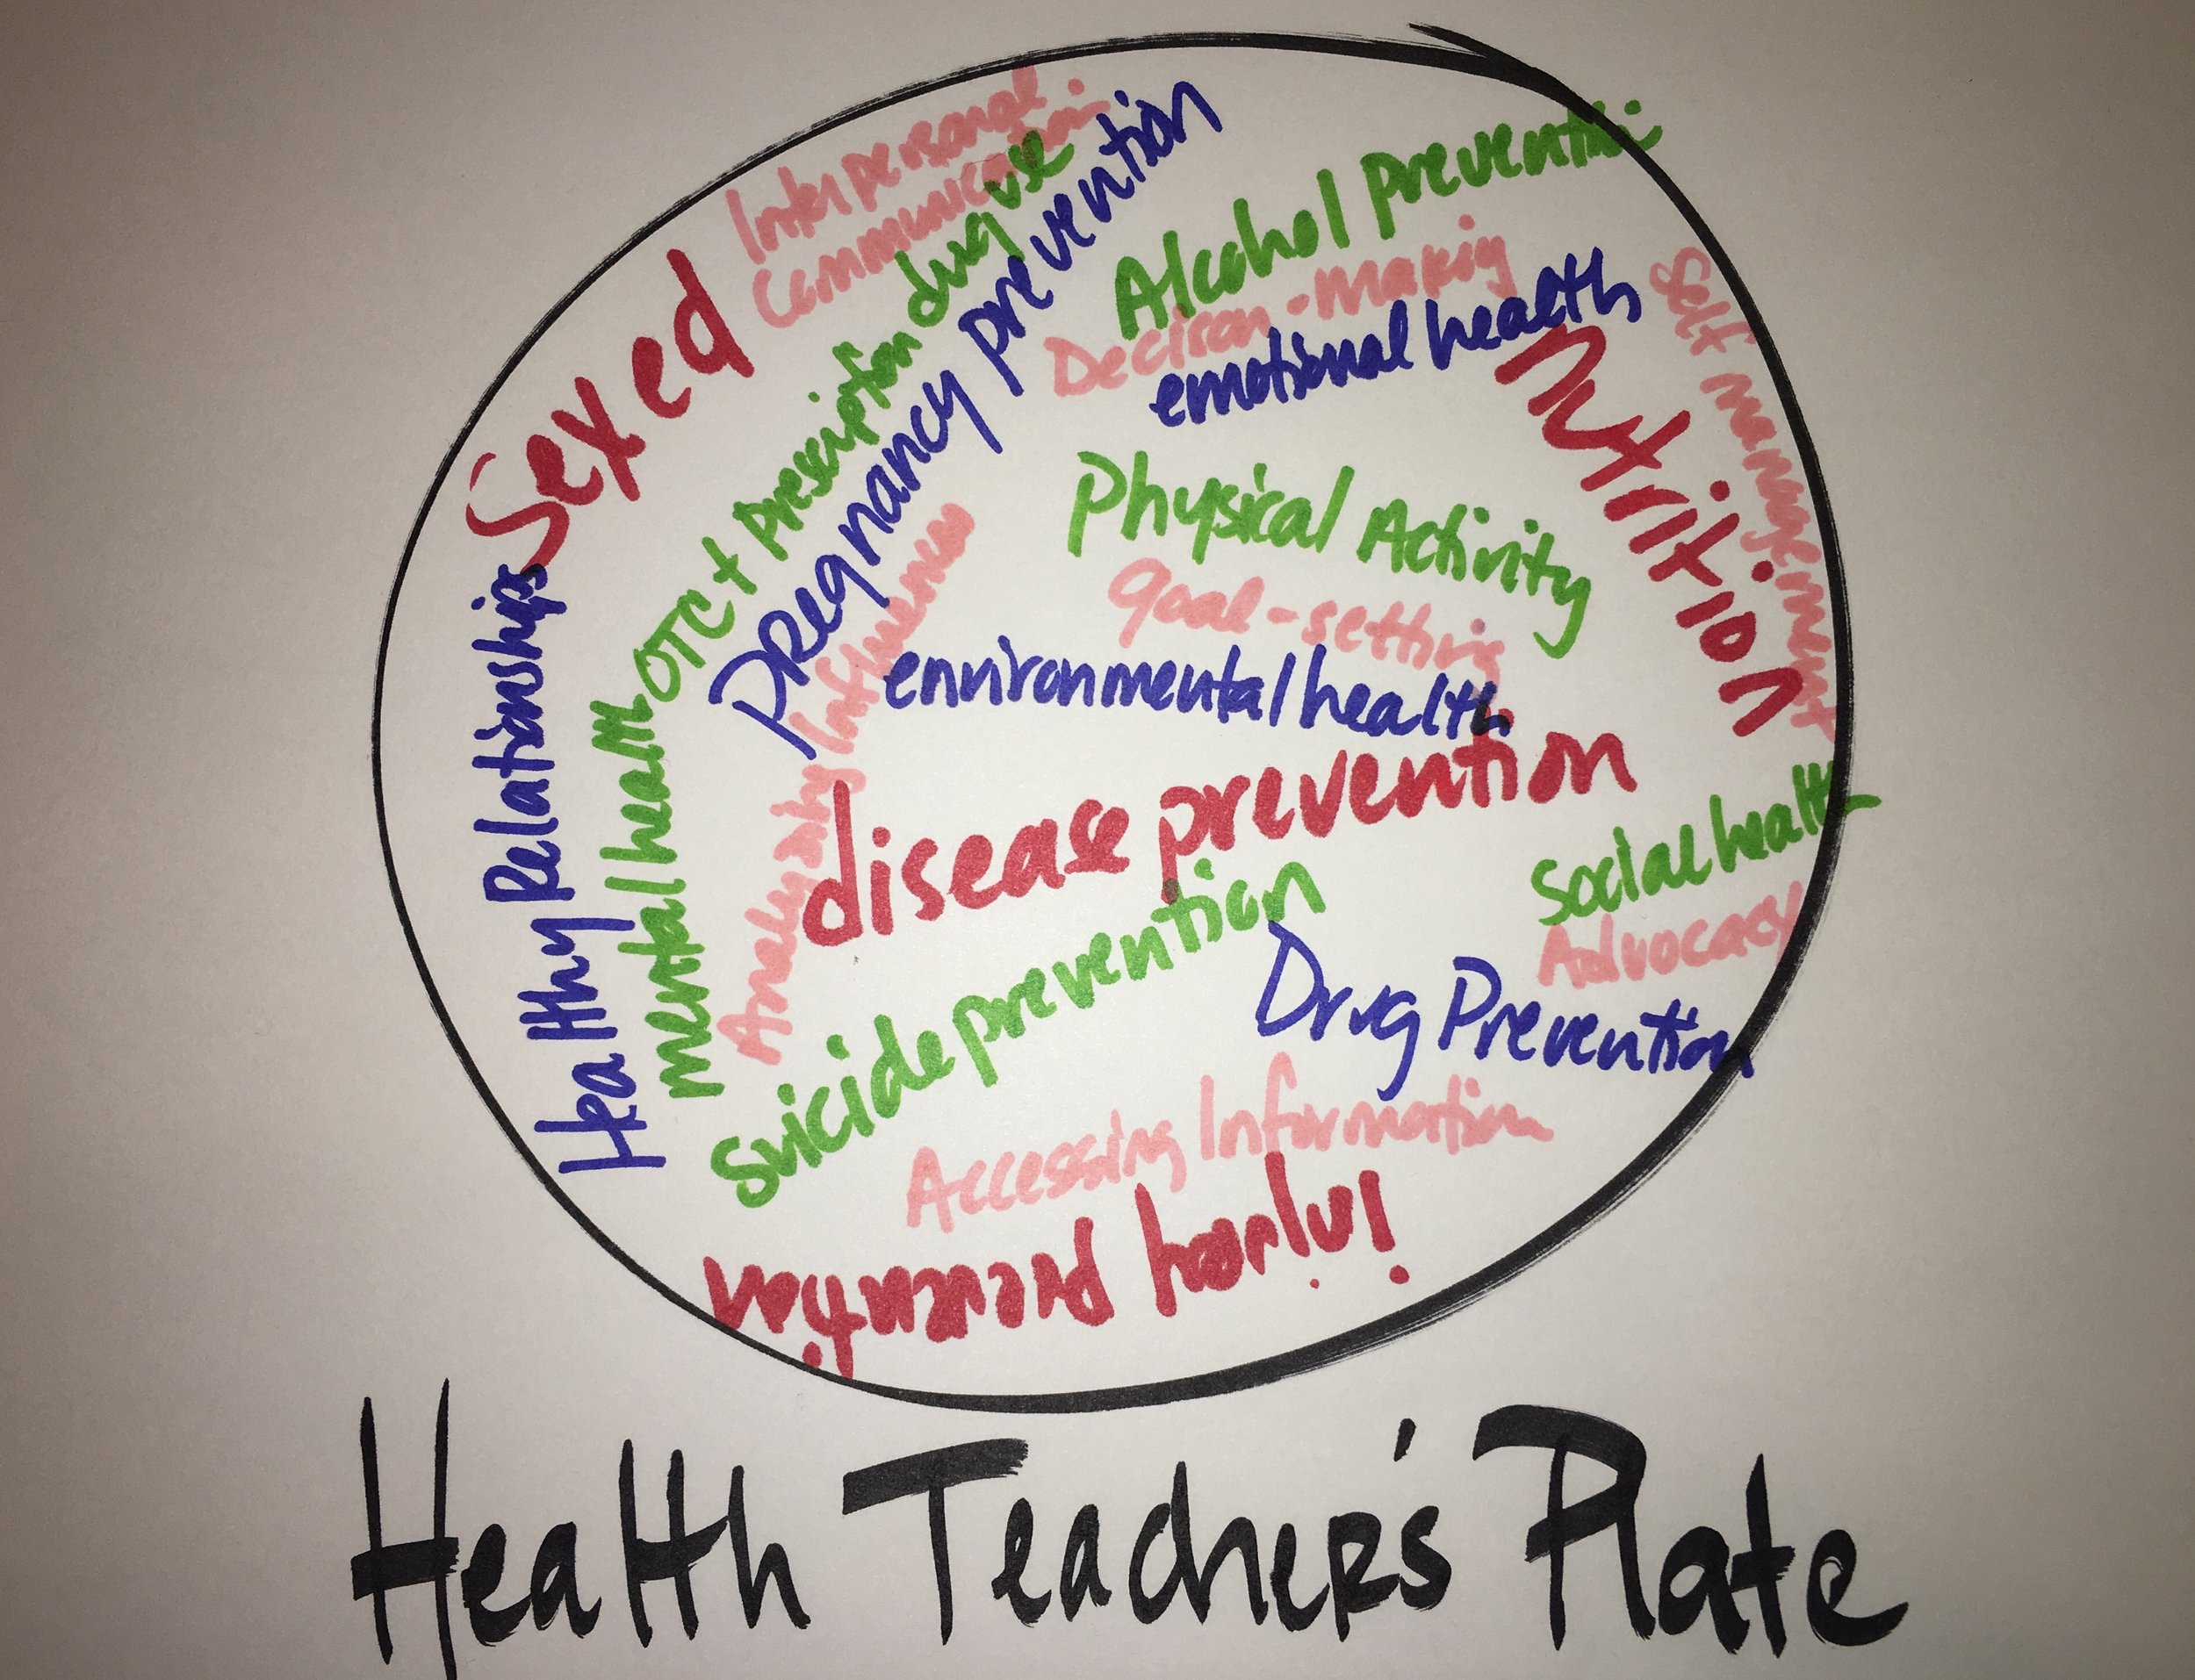 A health teachers plate- over 10 content areas and 7 skills (in pink).